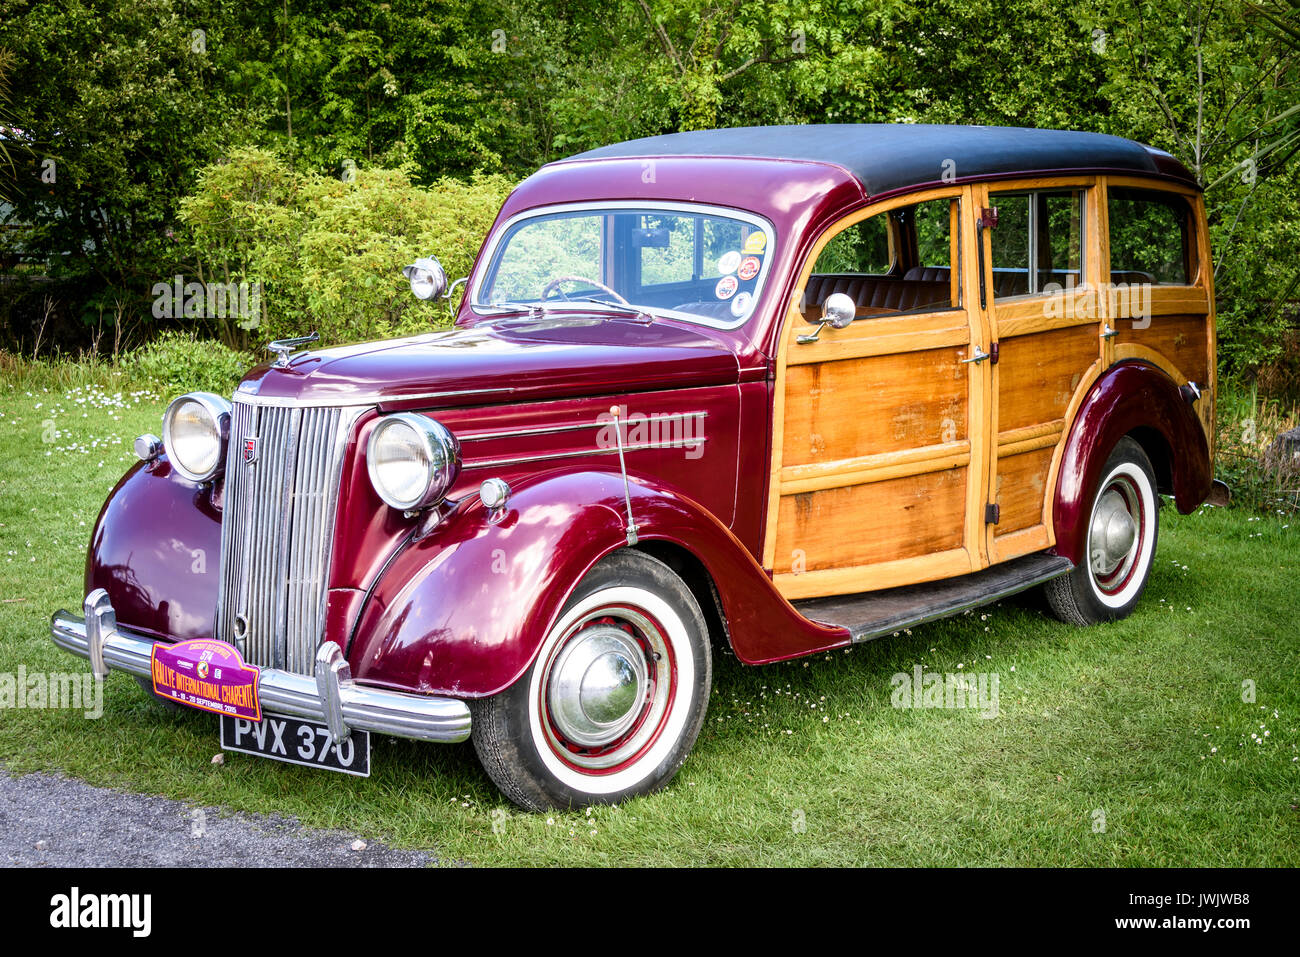 Circa 1950 Ford Pilot V8 'Woody' (front three-quarter view) on display in a garden setting - Stock Image